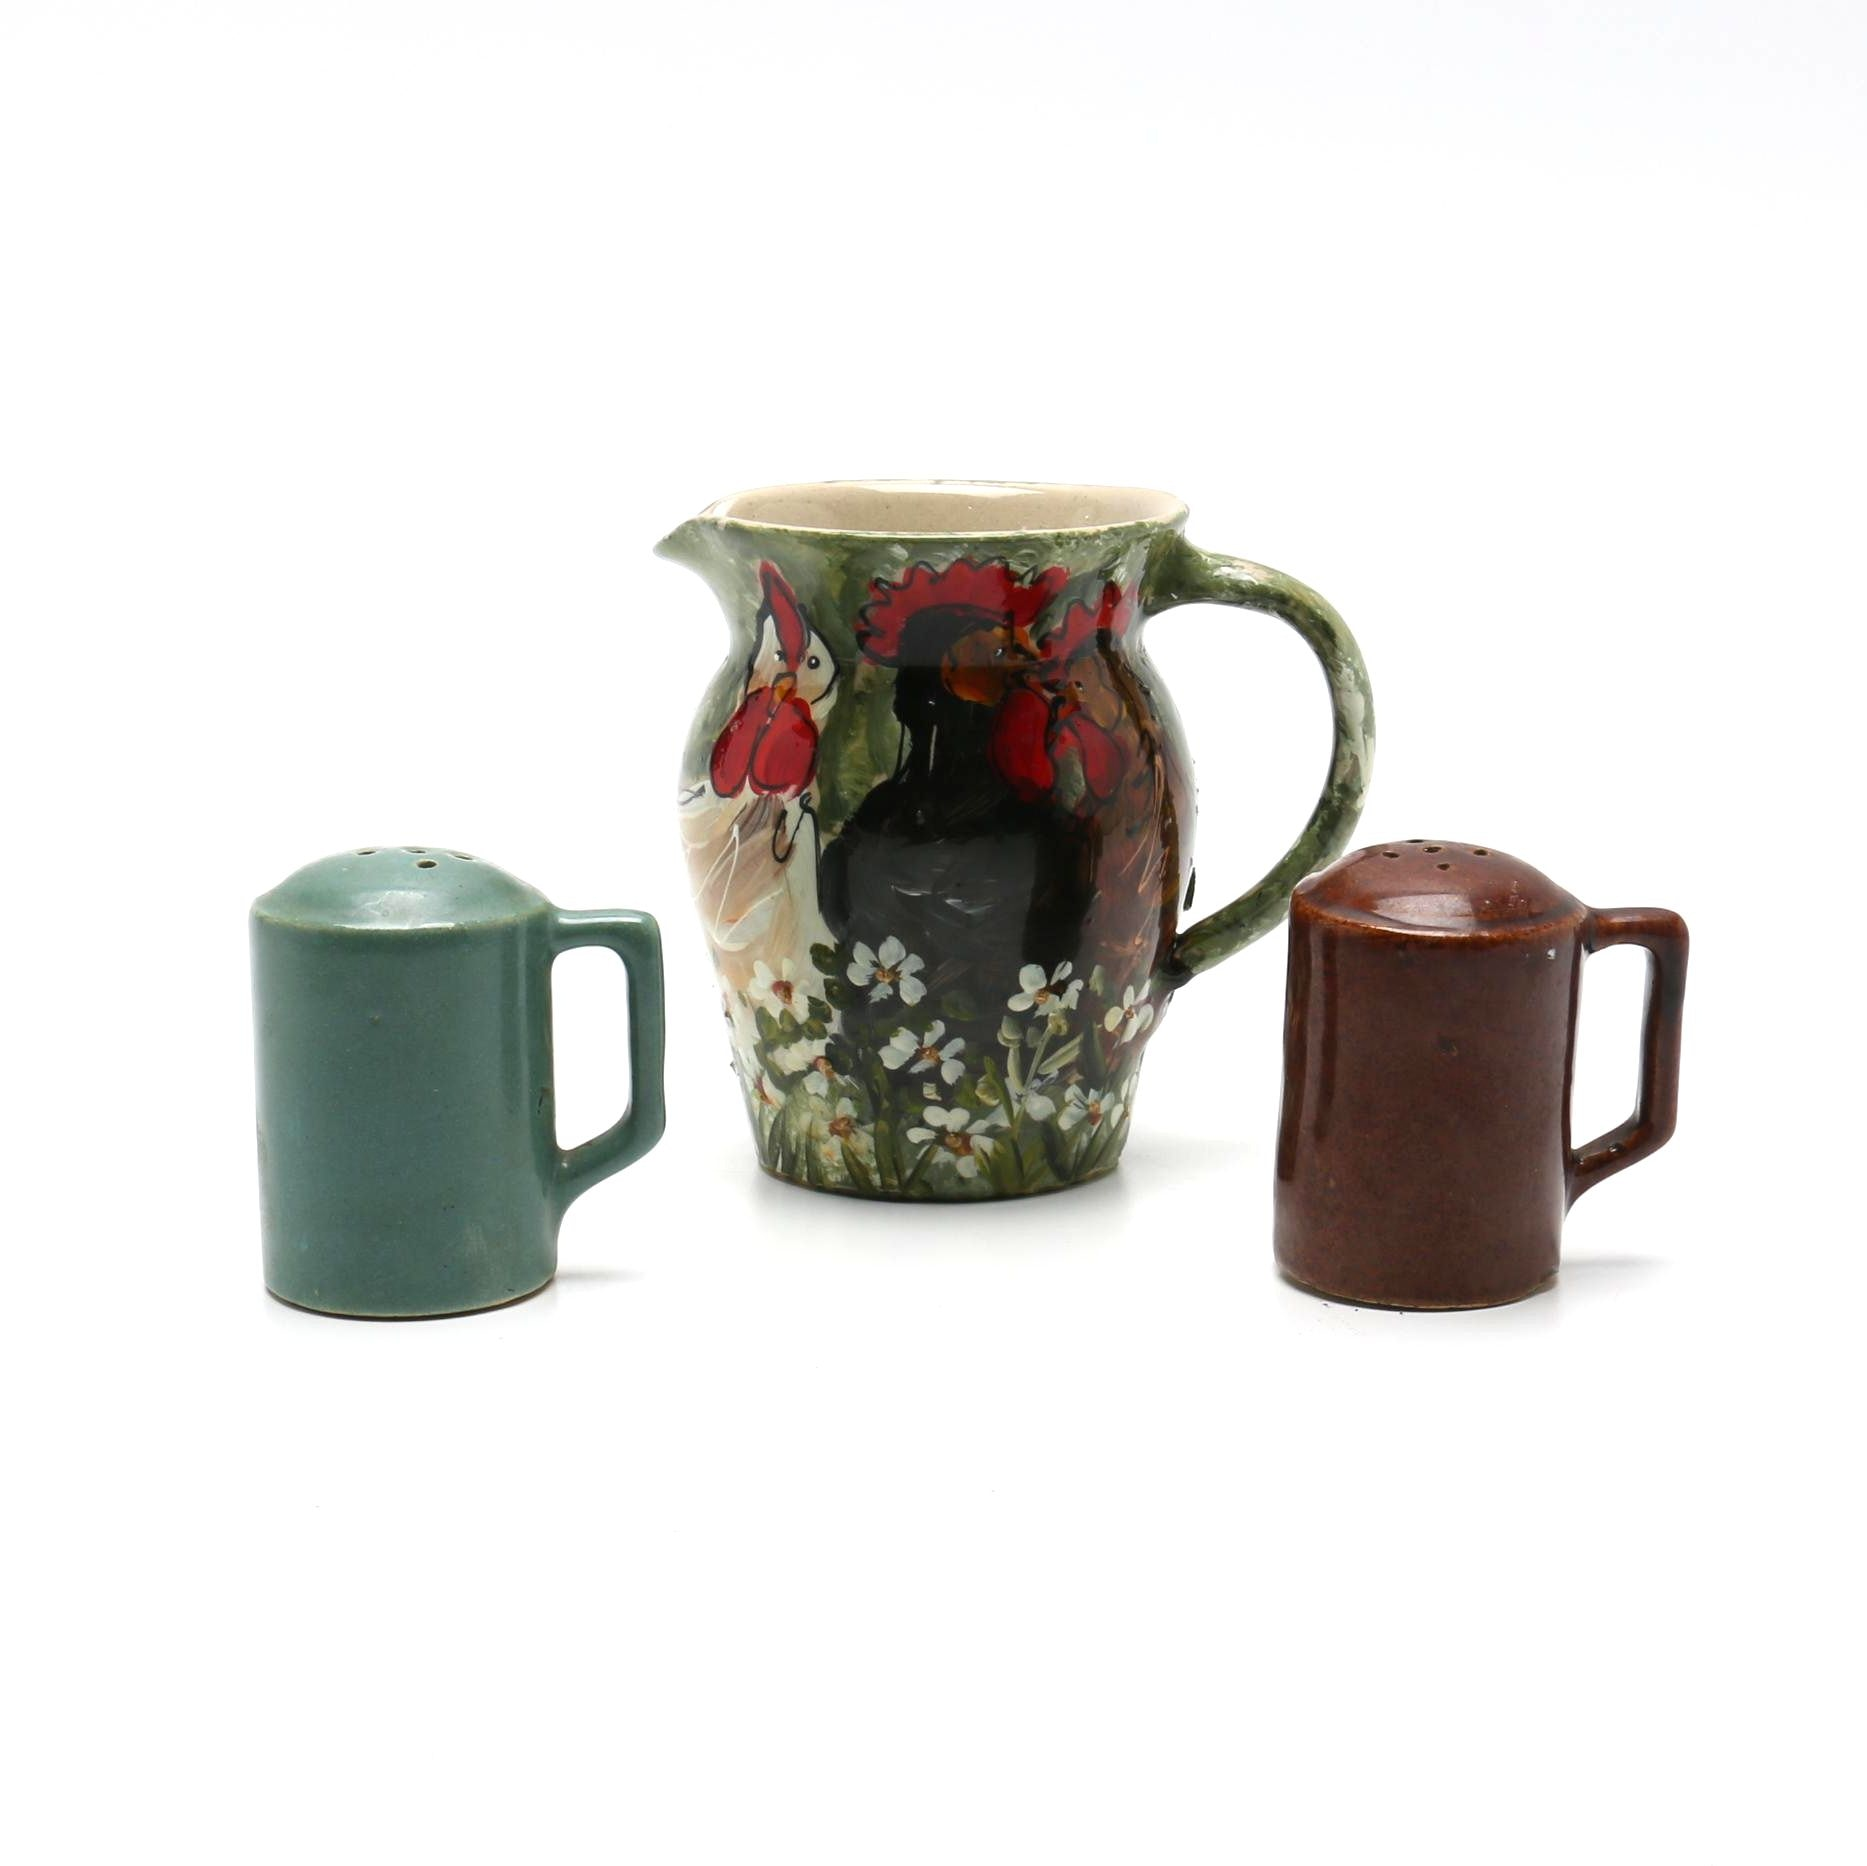 Stoneware Pitcher and Salt and Pepper Shakers